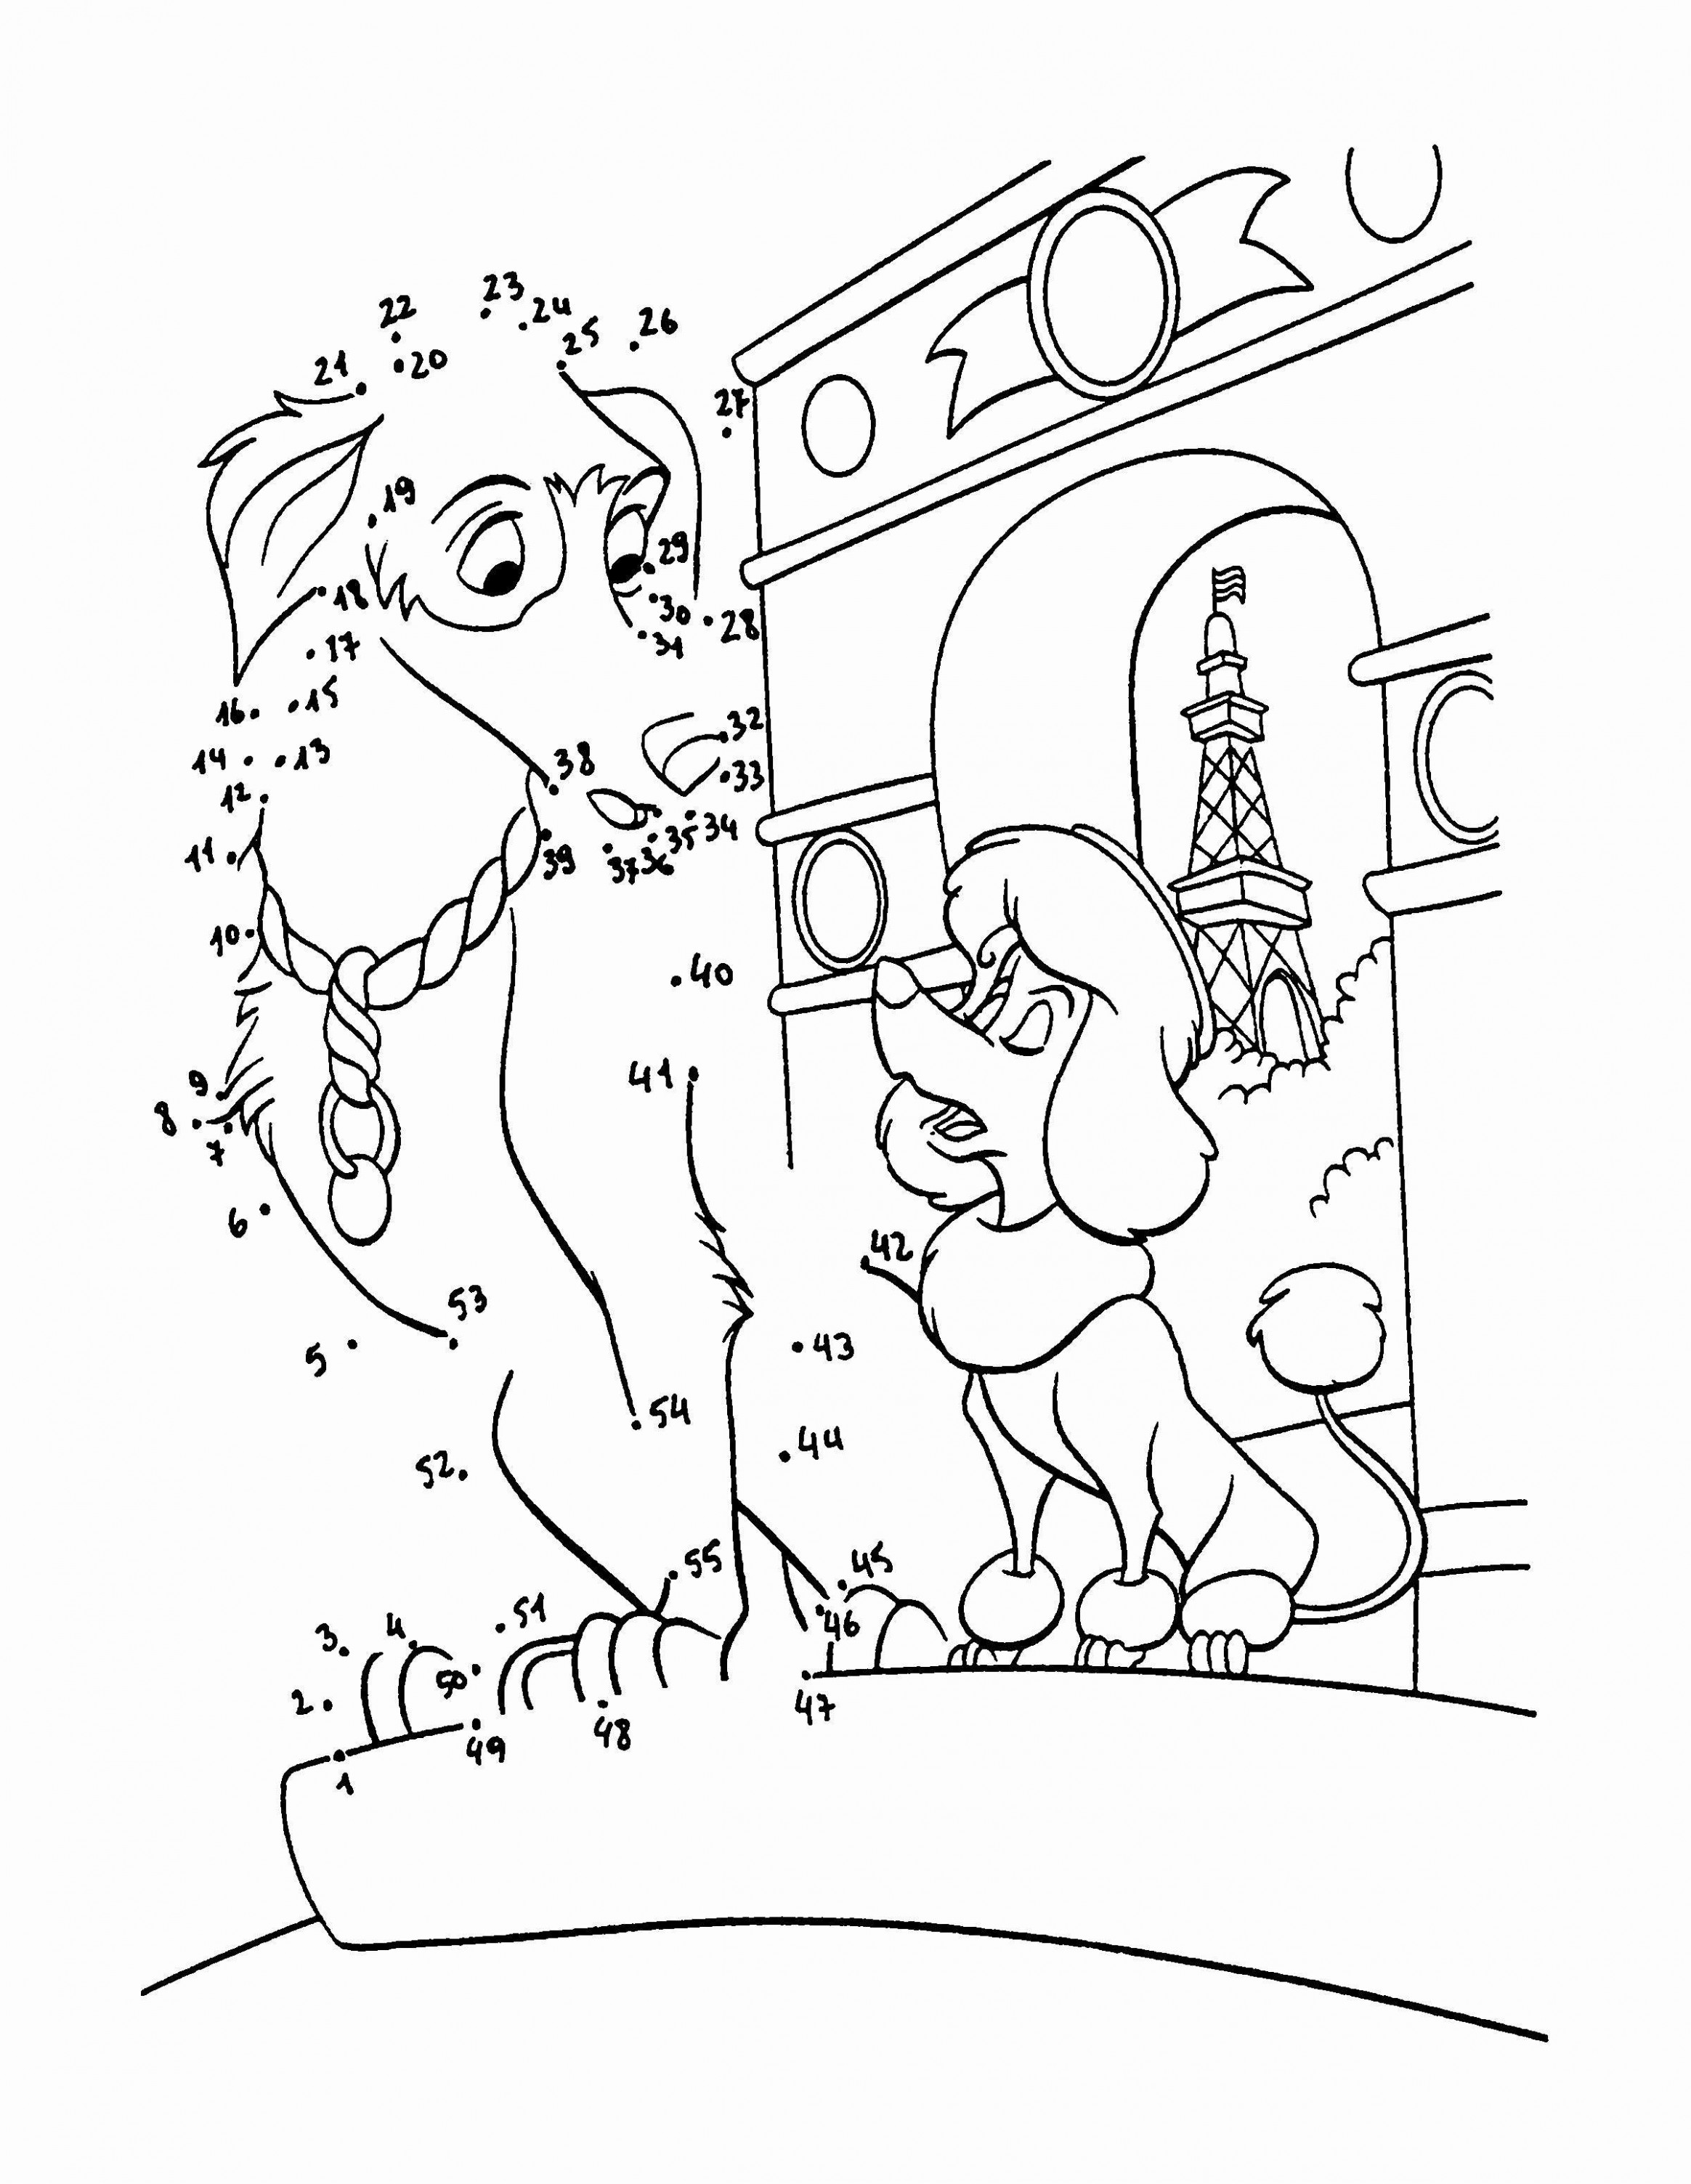 Star Wars Christmas Coloring Pages Within - baby-boom.me